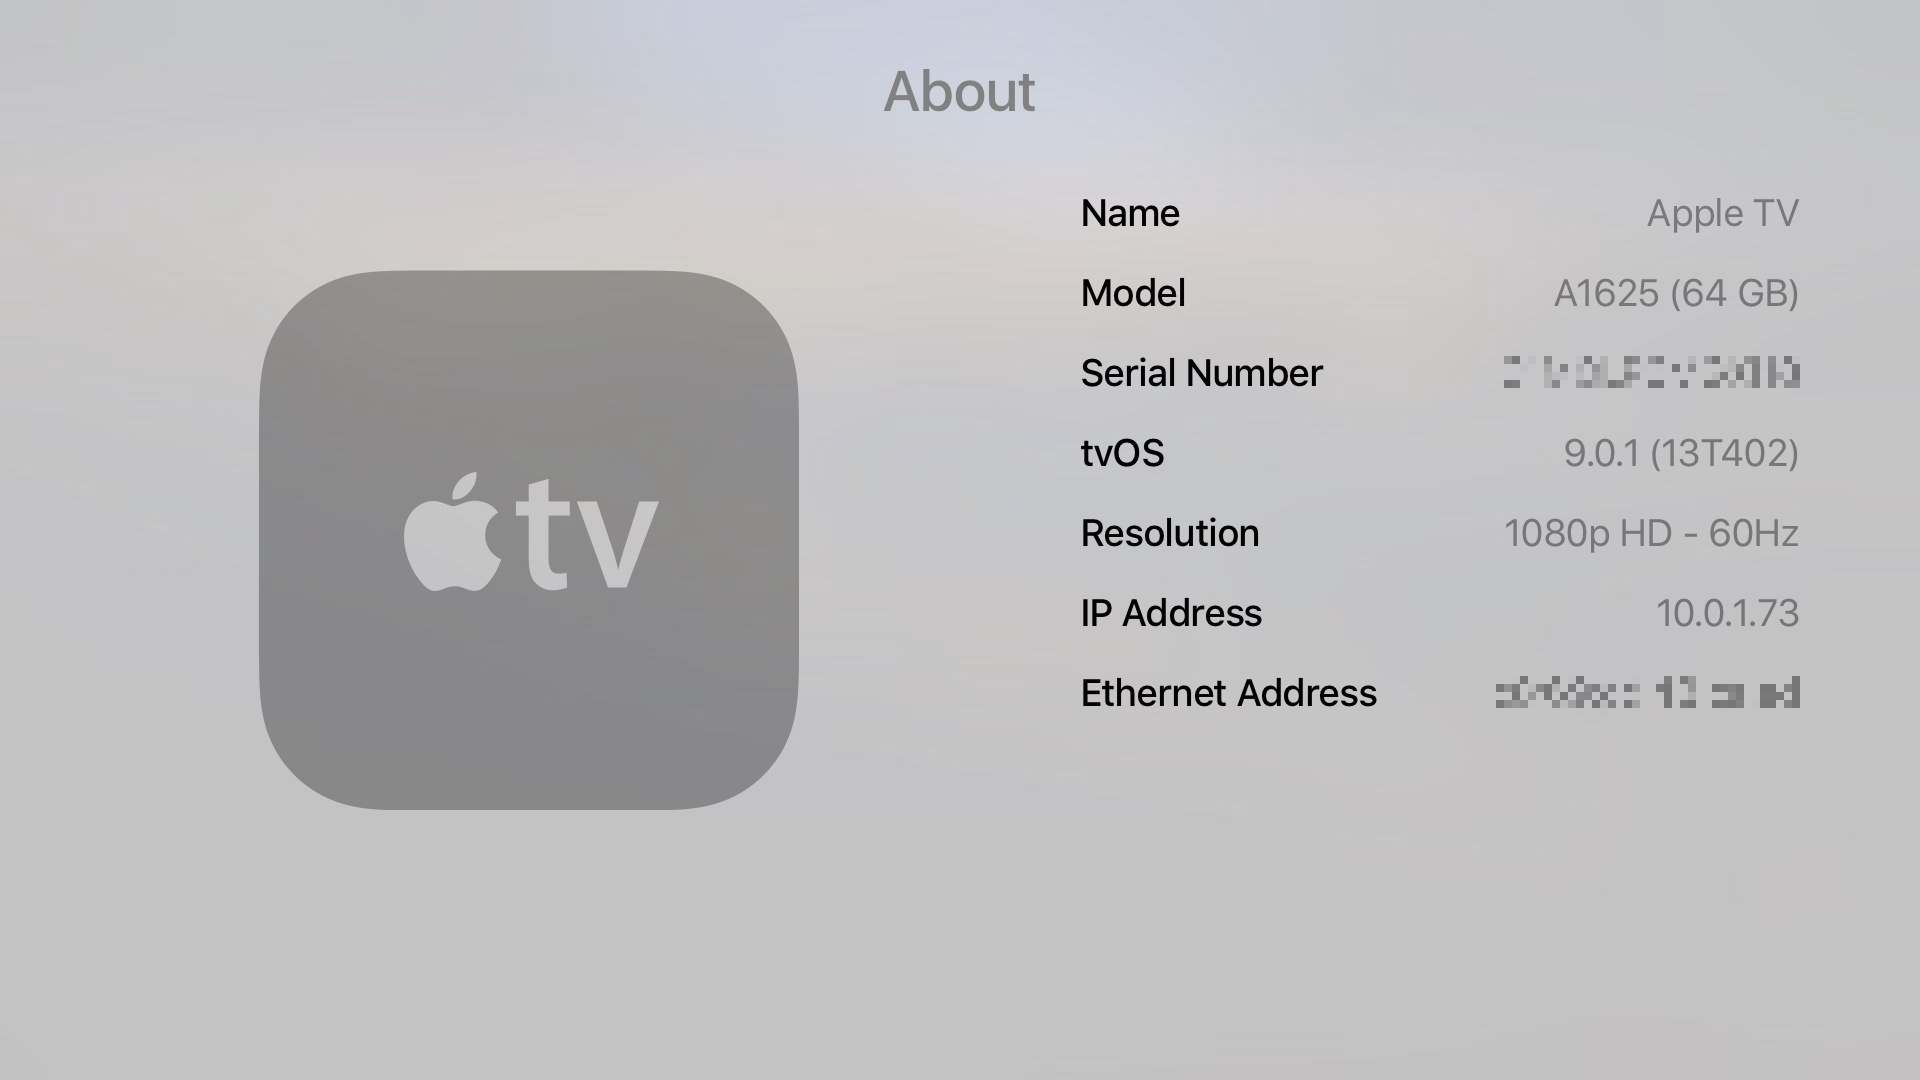 Apple TV 9.0.1 tvOS update